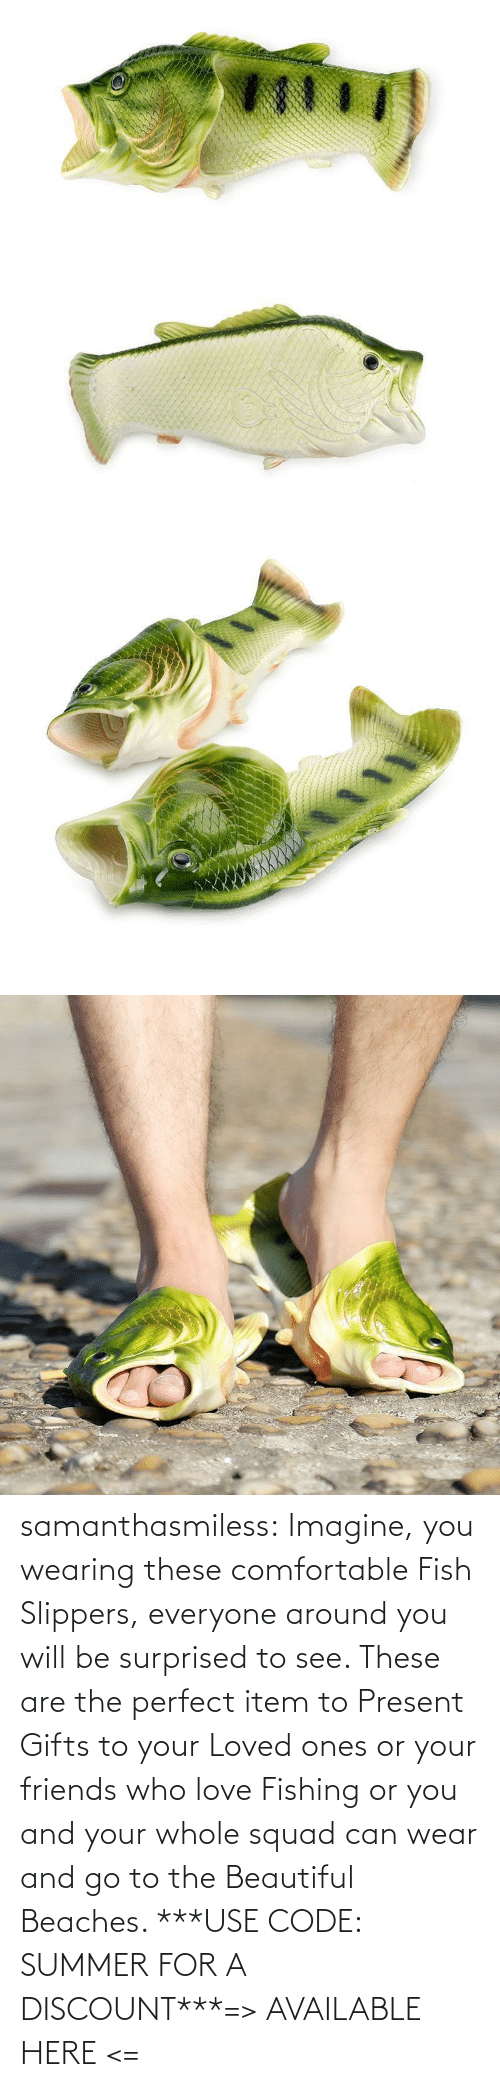 everyone: samanthasmiless:  Imagine, you wearing these comfortable Fish Slippers, everyone around you will be surprised to see. These are the perfect item to Present Gifts to your Loved ones or your friends who love Fishing or you and your whole squad can wear and go to the Beautiful Beaches. ***USE CODE: SUMMER FOR A DISCOUNT***=> AVAILABLE HERE <=